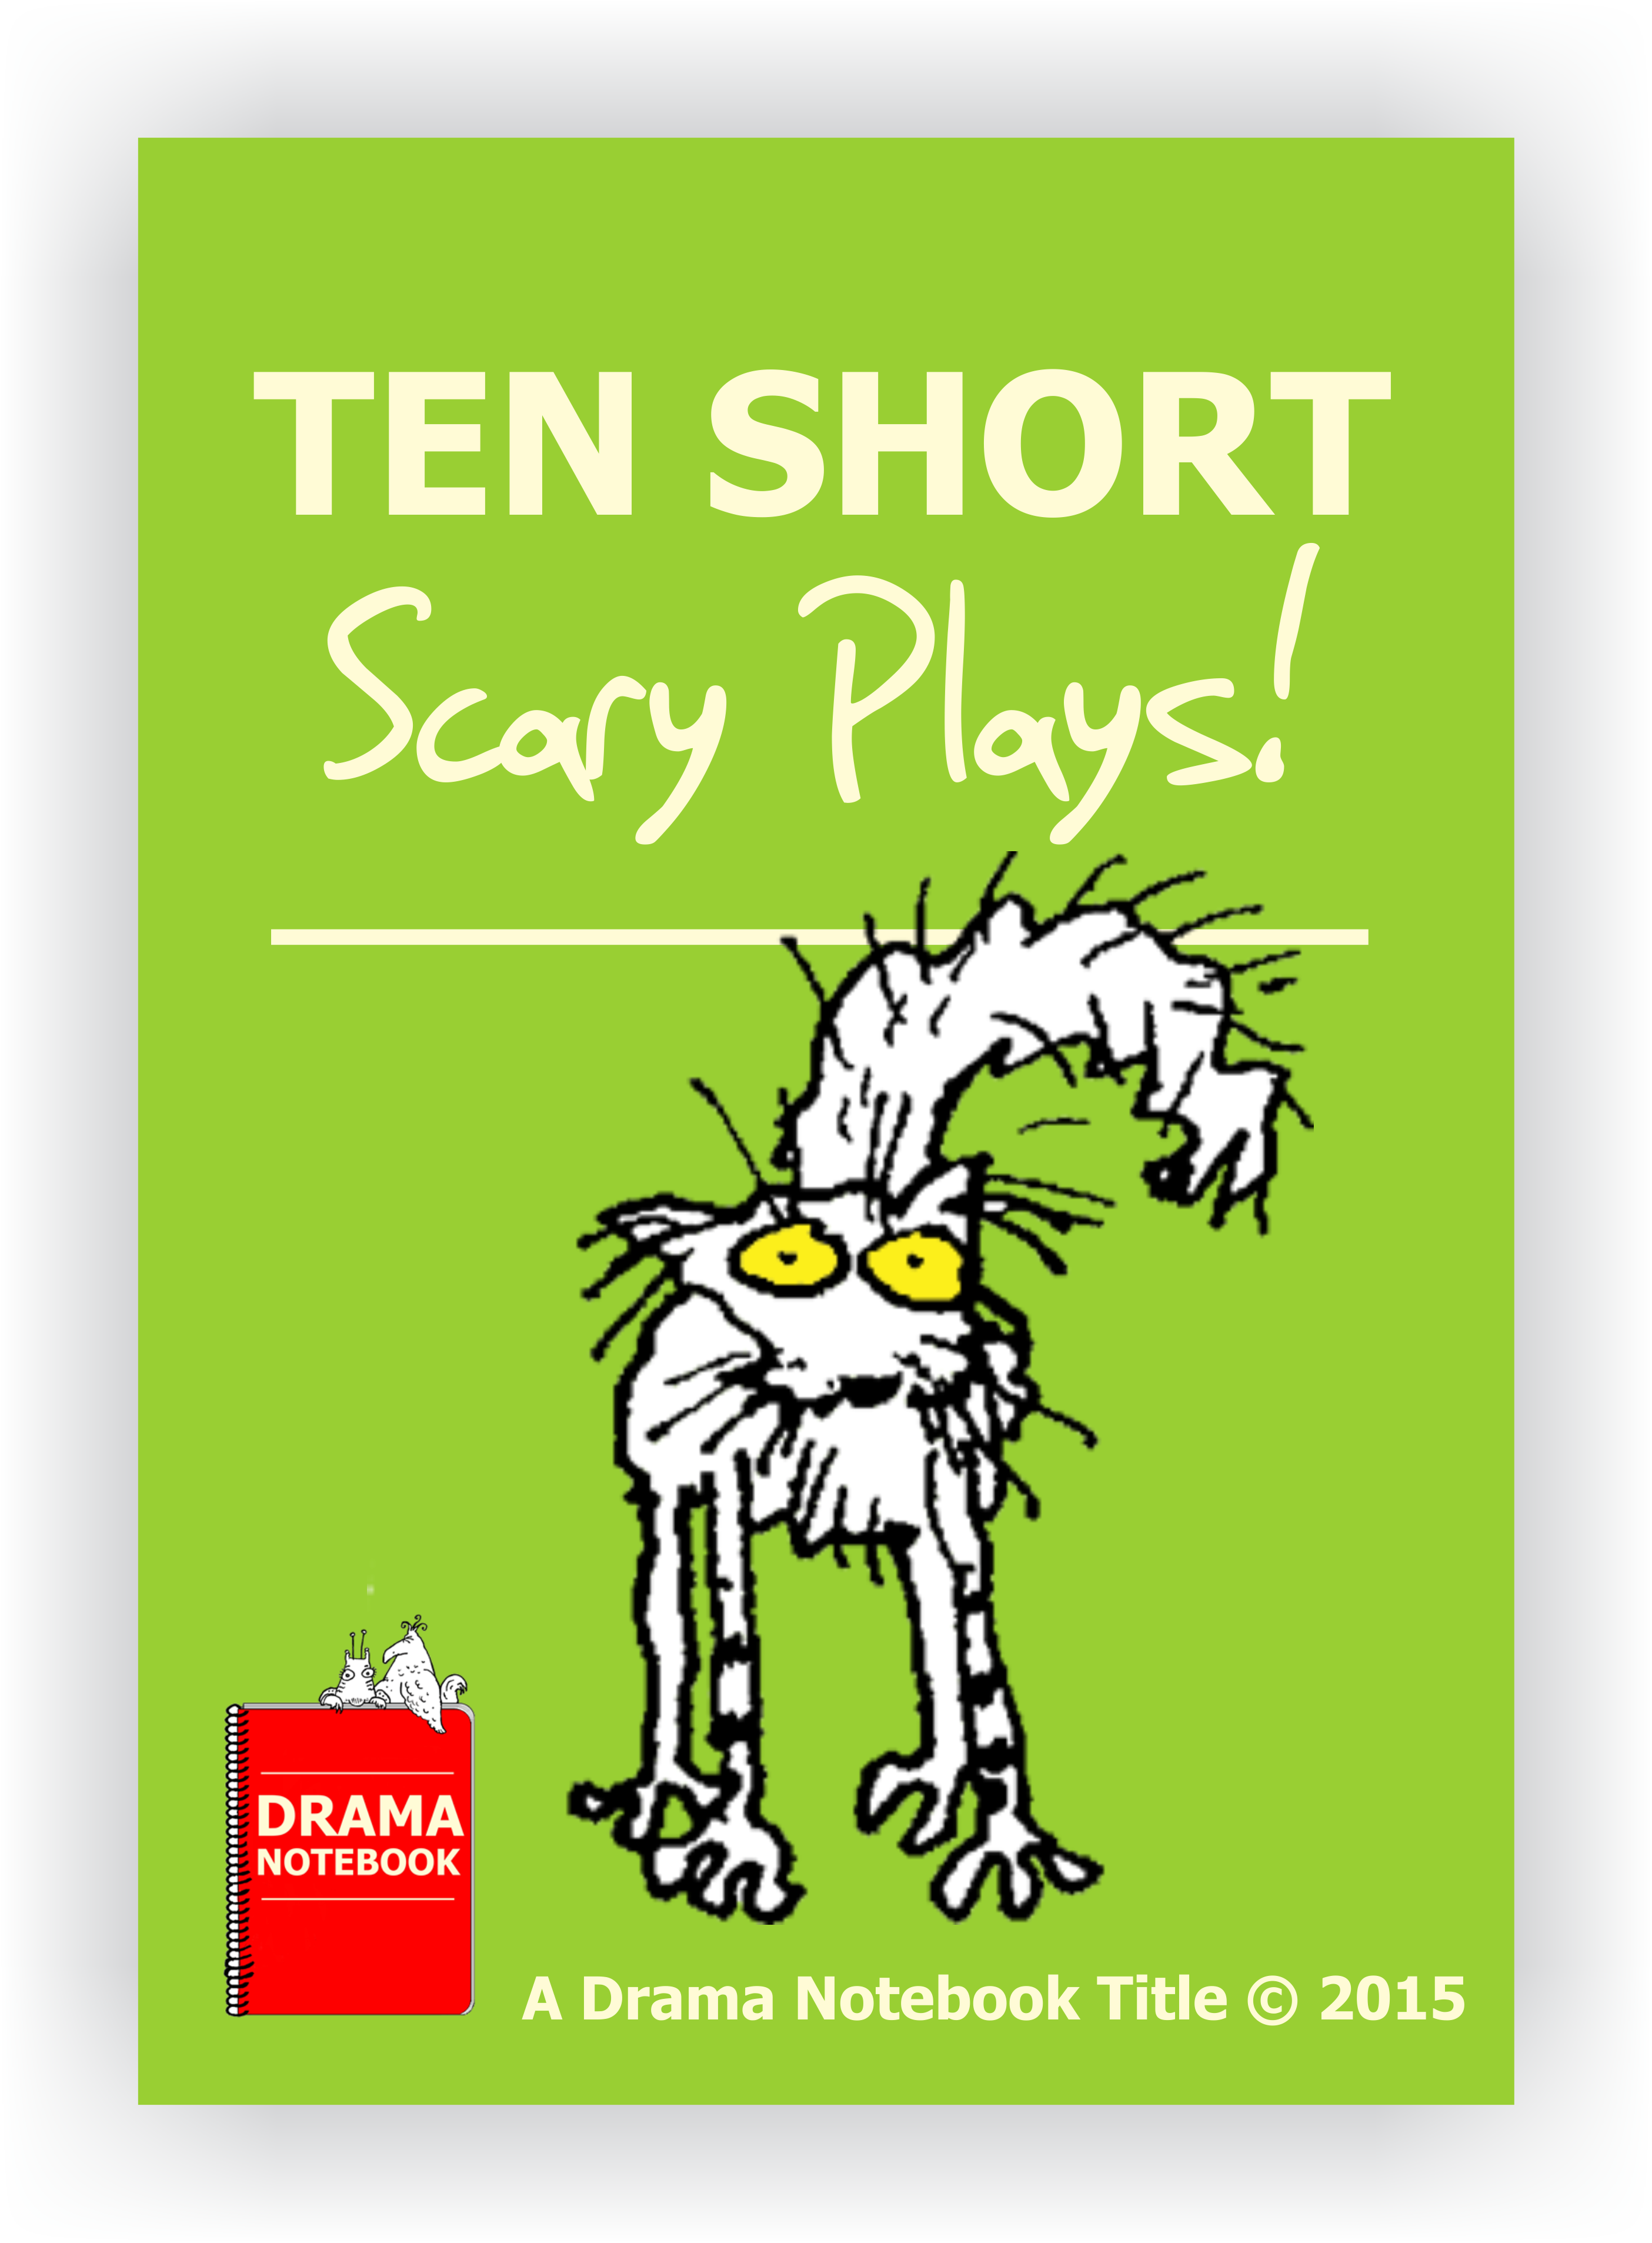 10 Short Scary Plays Drama Notebook Drama Activities Play Scripts For Kids Teaching Drama